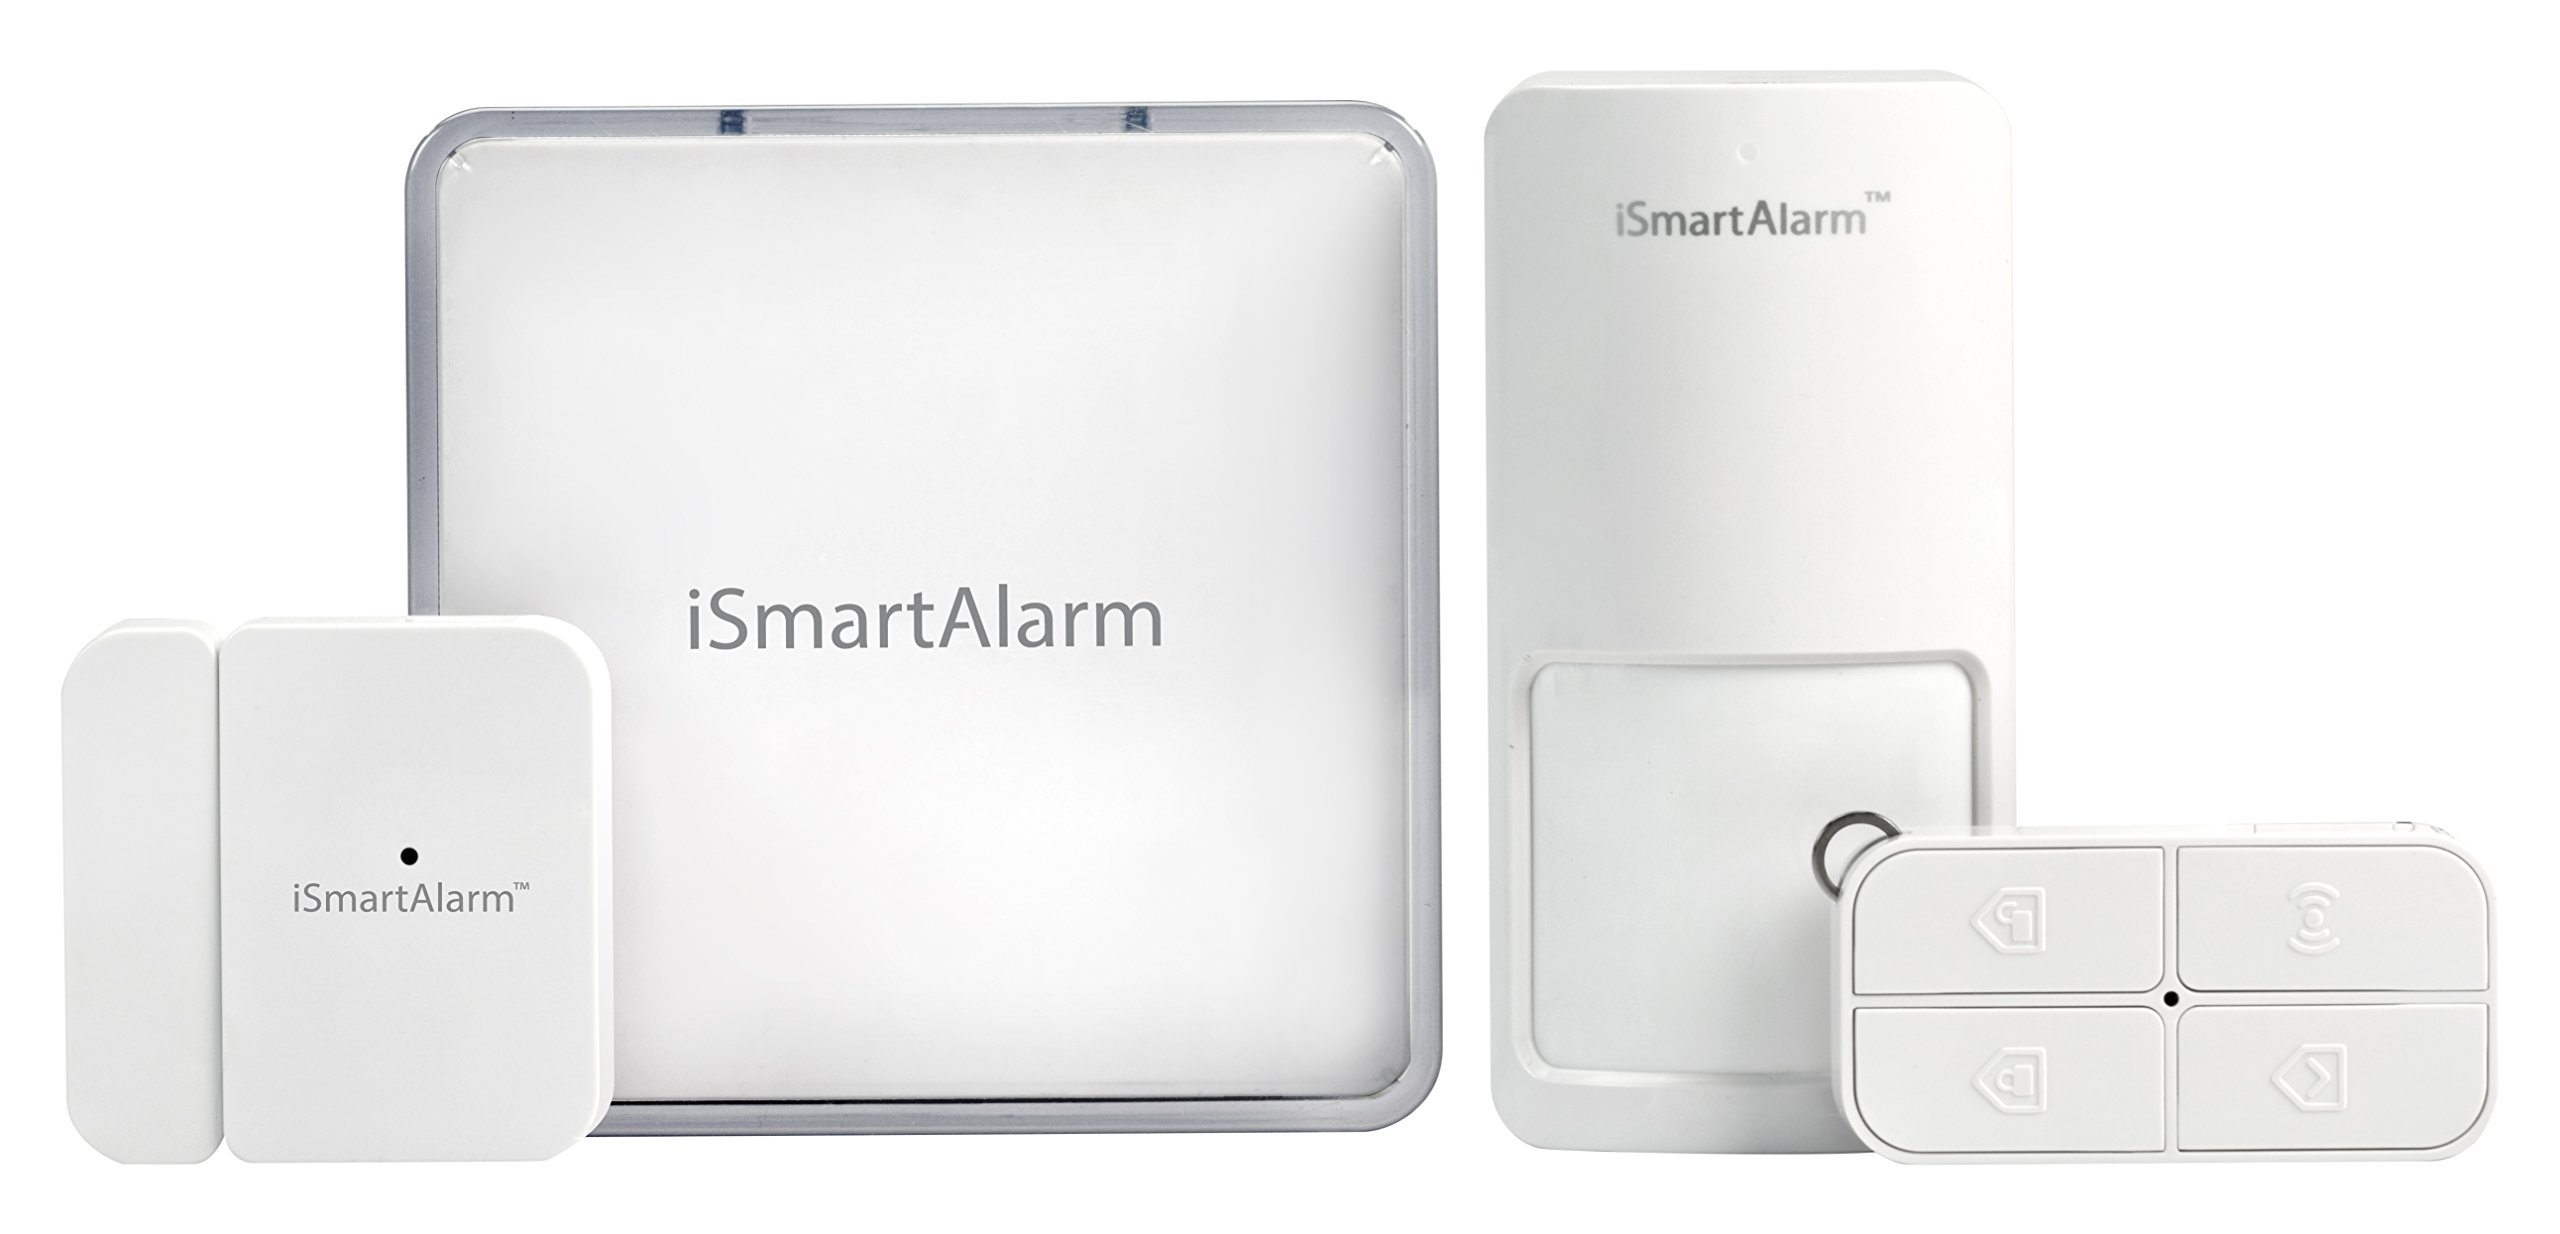 iSmartAlarm Apartment Security Package | Wireless DIY No Fee IFTTT & Alexa Compatible iOS & Android App | iSA1, White